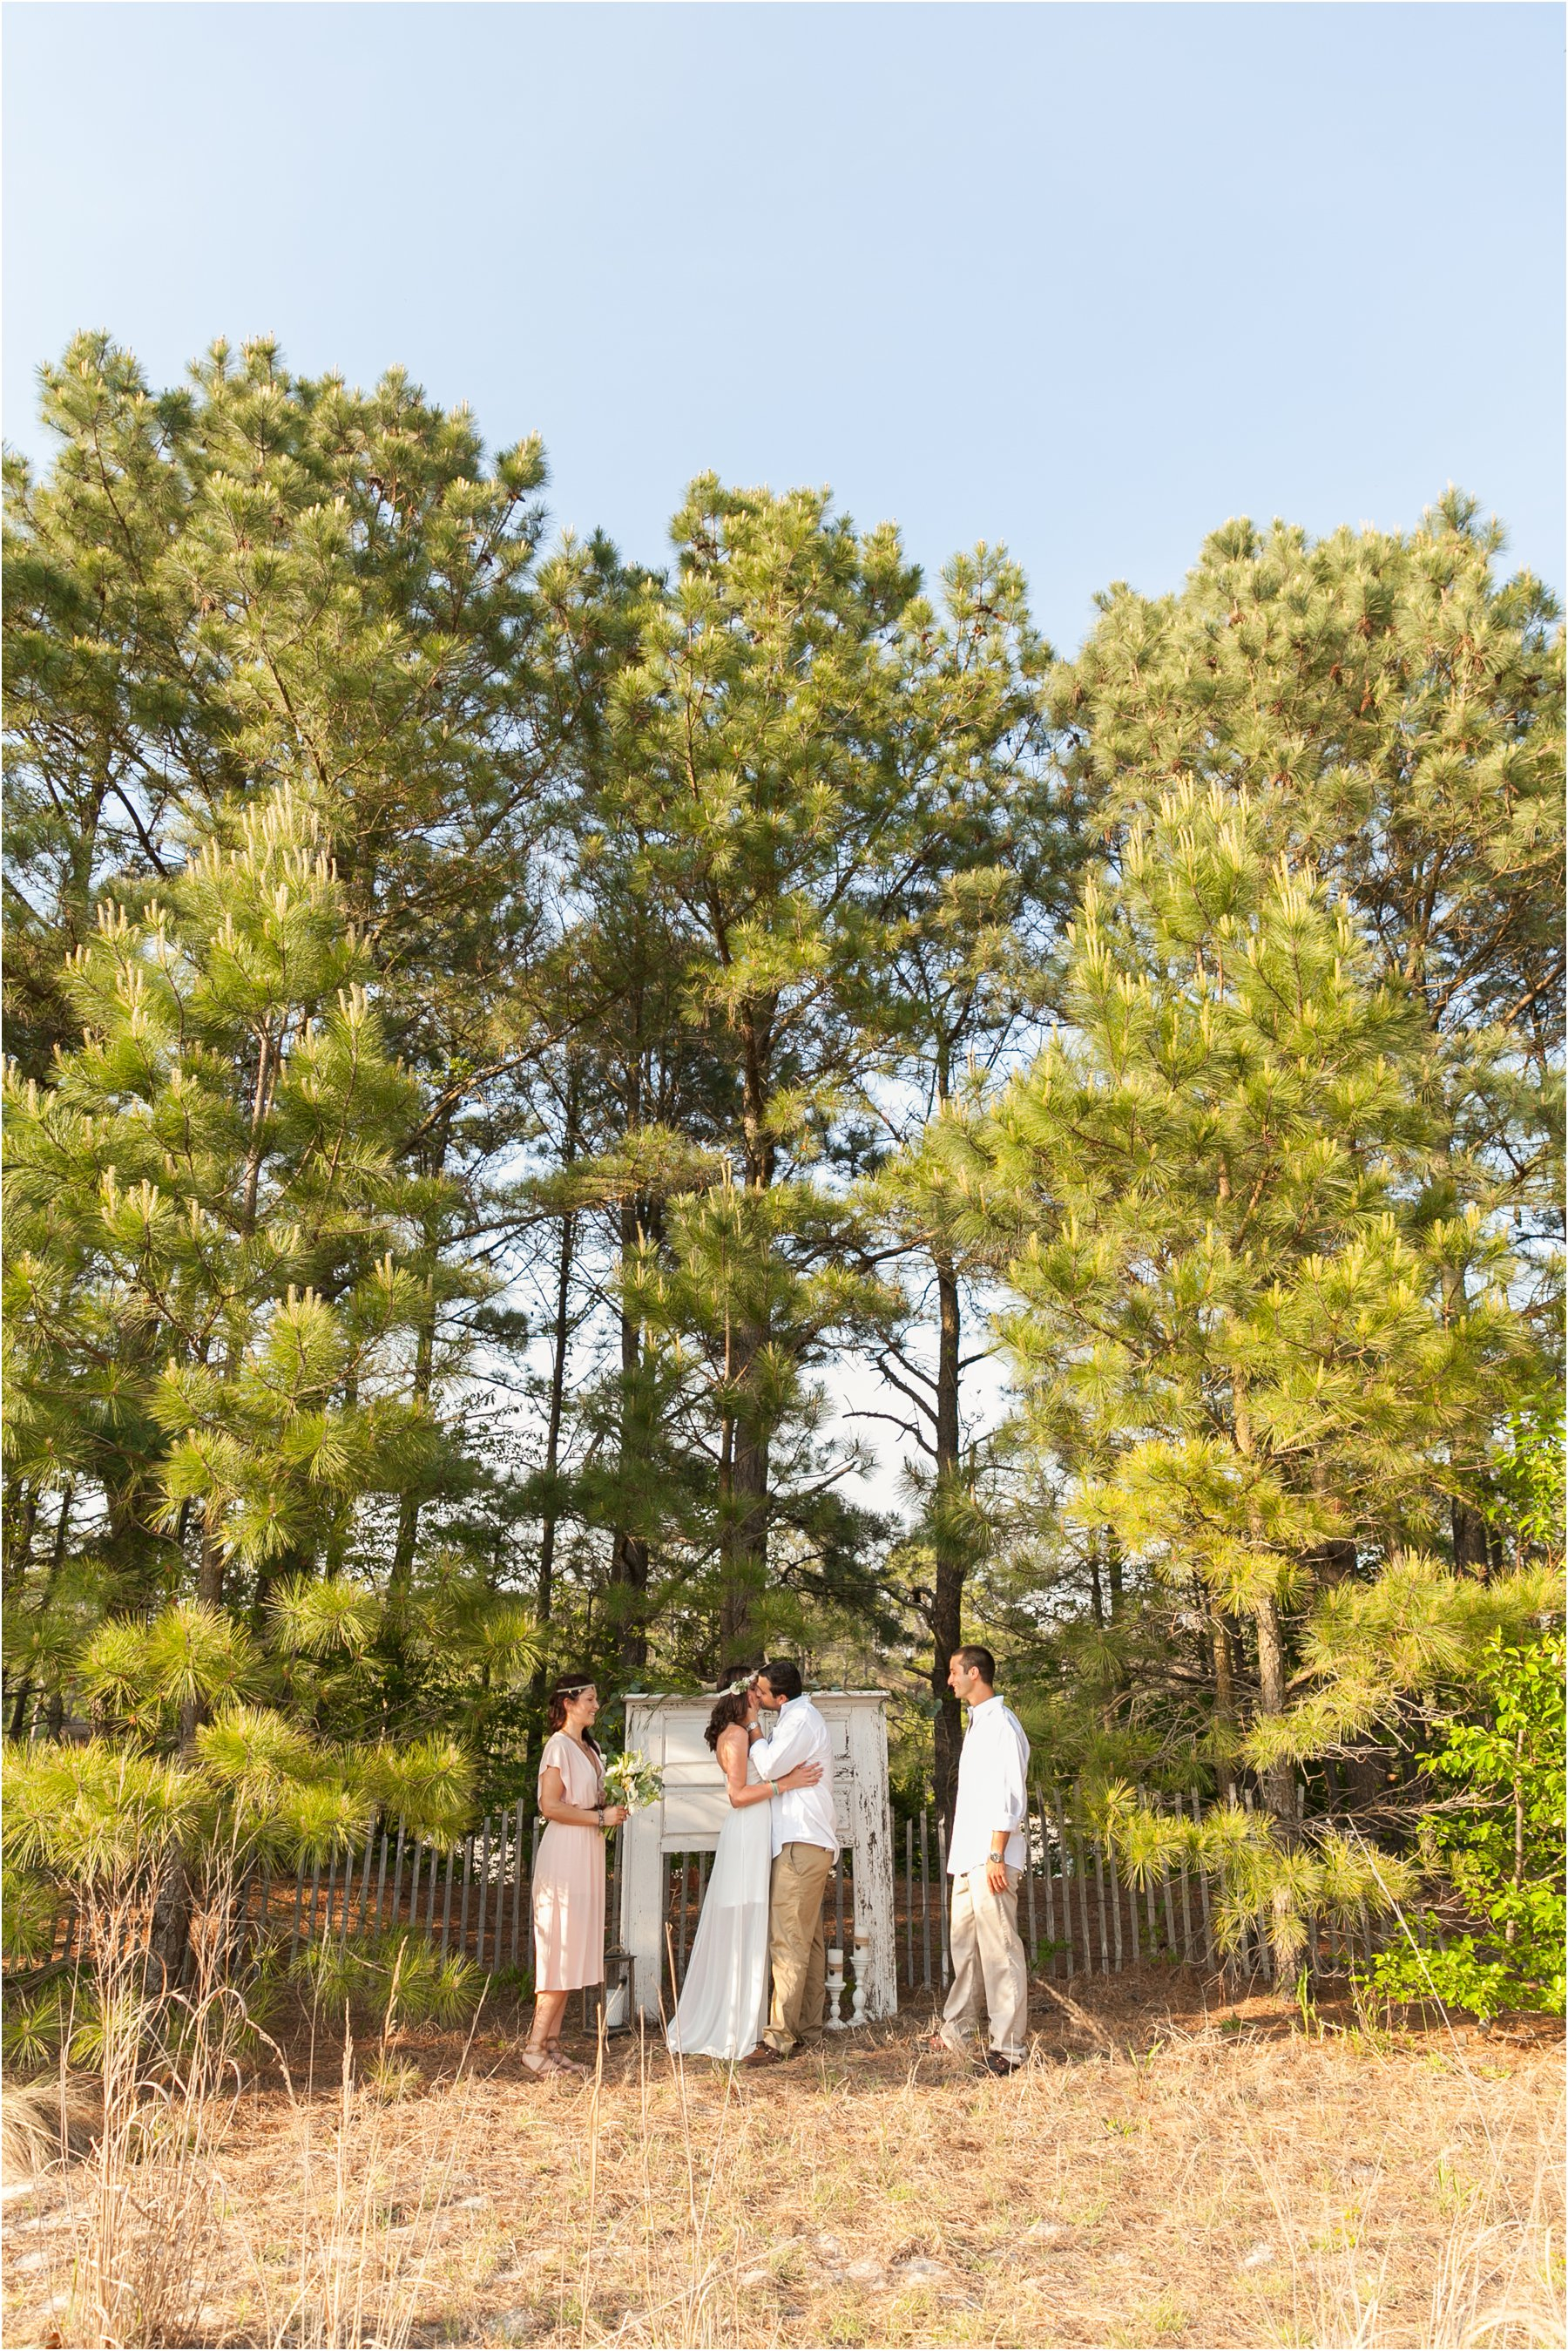 Nofolk_Zoo_engagement_photography_virginia_Jessica_ryan_photography_0154